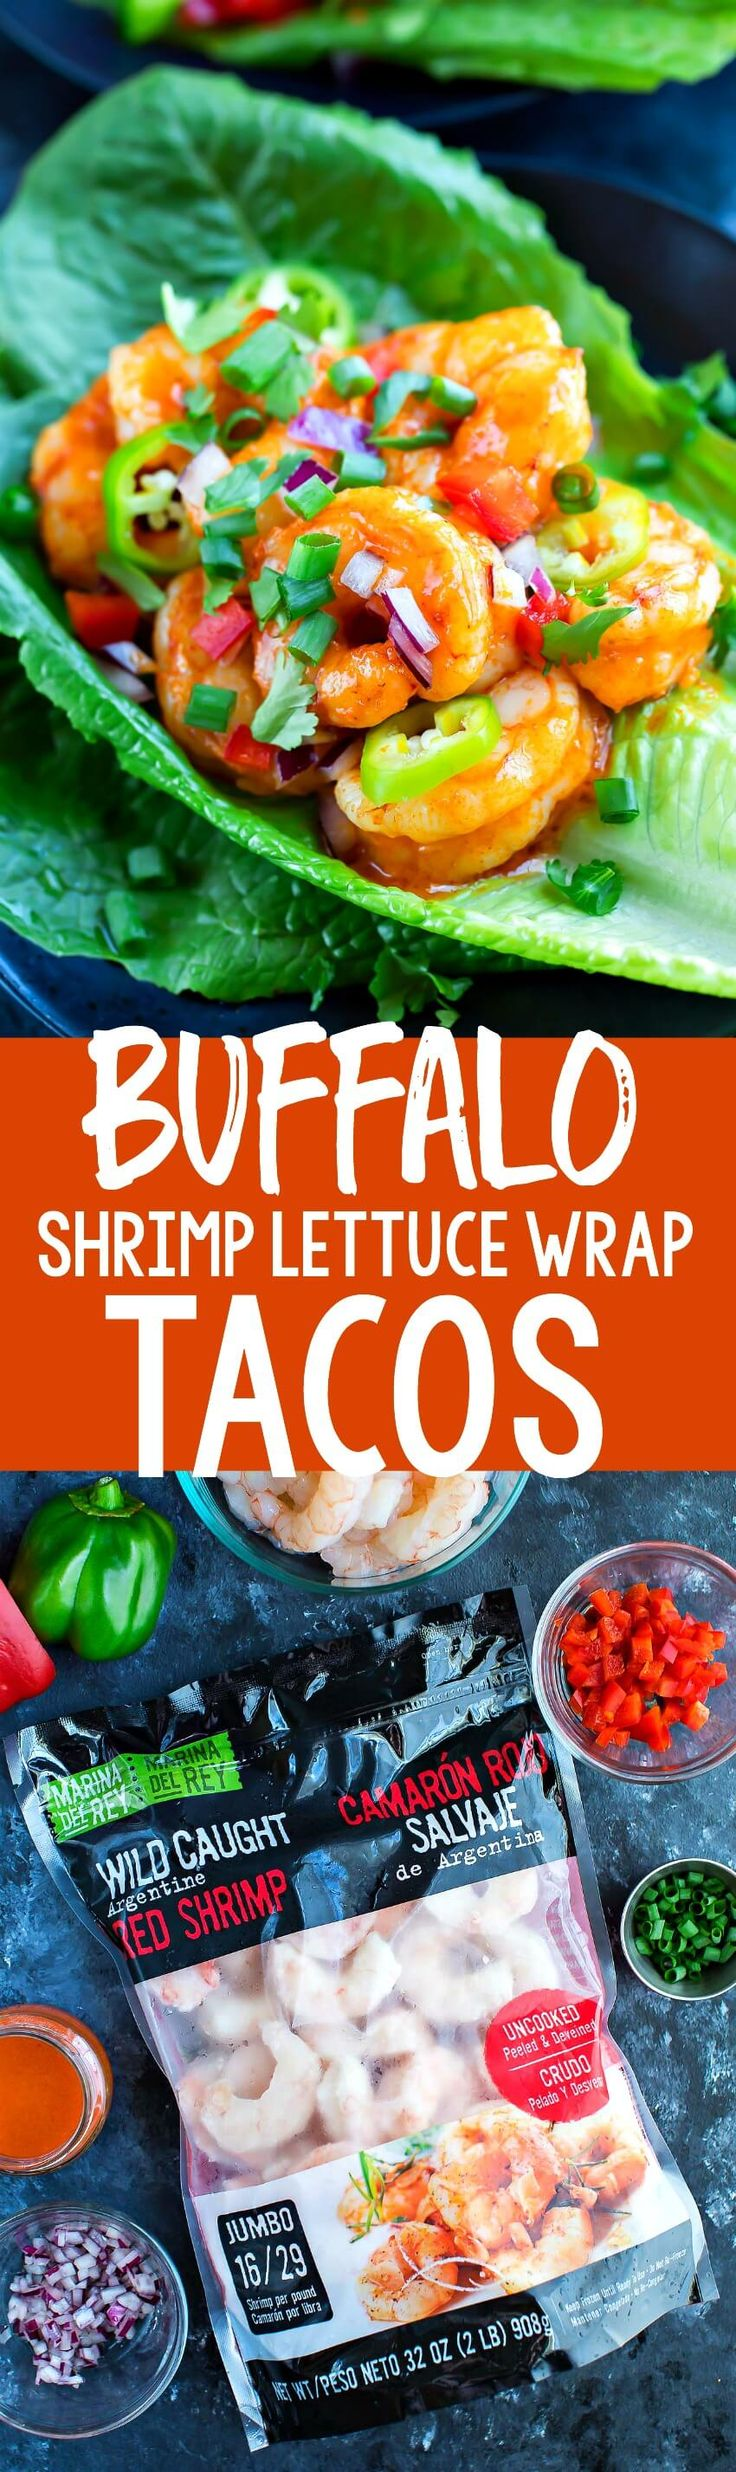 These spicy Buffalo Shrimp Lettuce Wrap Tacos are fast, flavorful, and ready to Taco Tuesday your face off! Each tasty taco is gluten-free, paleo and Whole30 friendly too! Sponsored by @MDRFoods